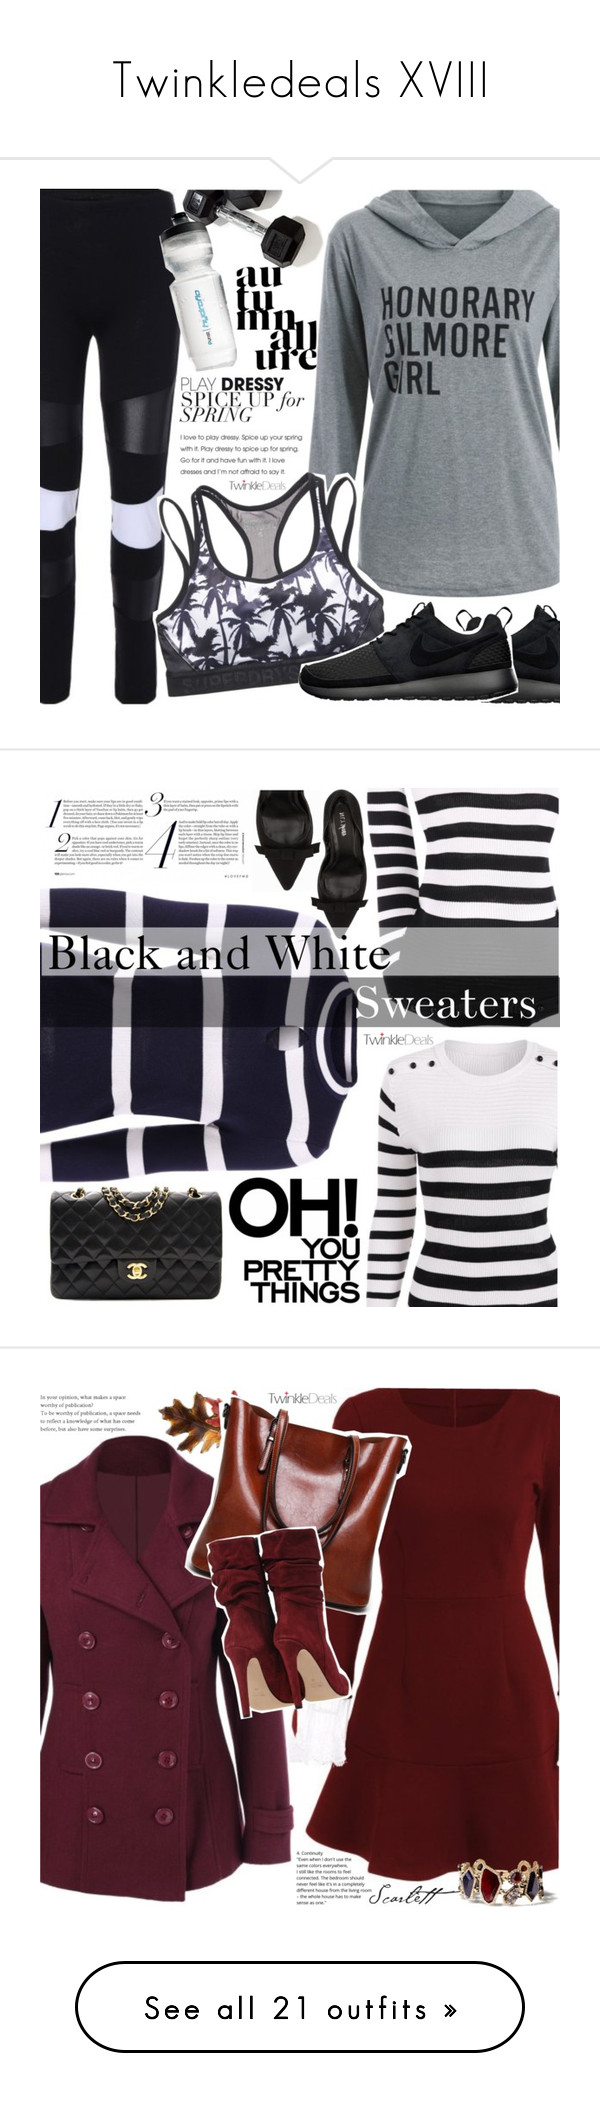 """""""Twinkledeals XVIII"""" by vanjazivadinovic ❤ liked on Polyvore featuring twinkledeals, Superdry, NIKE, polyvoreeditorial, Nly Shoes, Chanel, Anne Klein, Chloe + Isabel, vintage and Kershaw"""